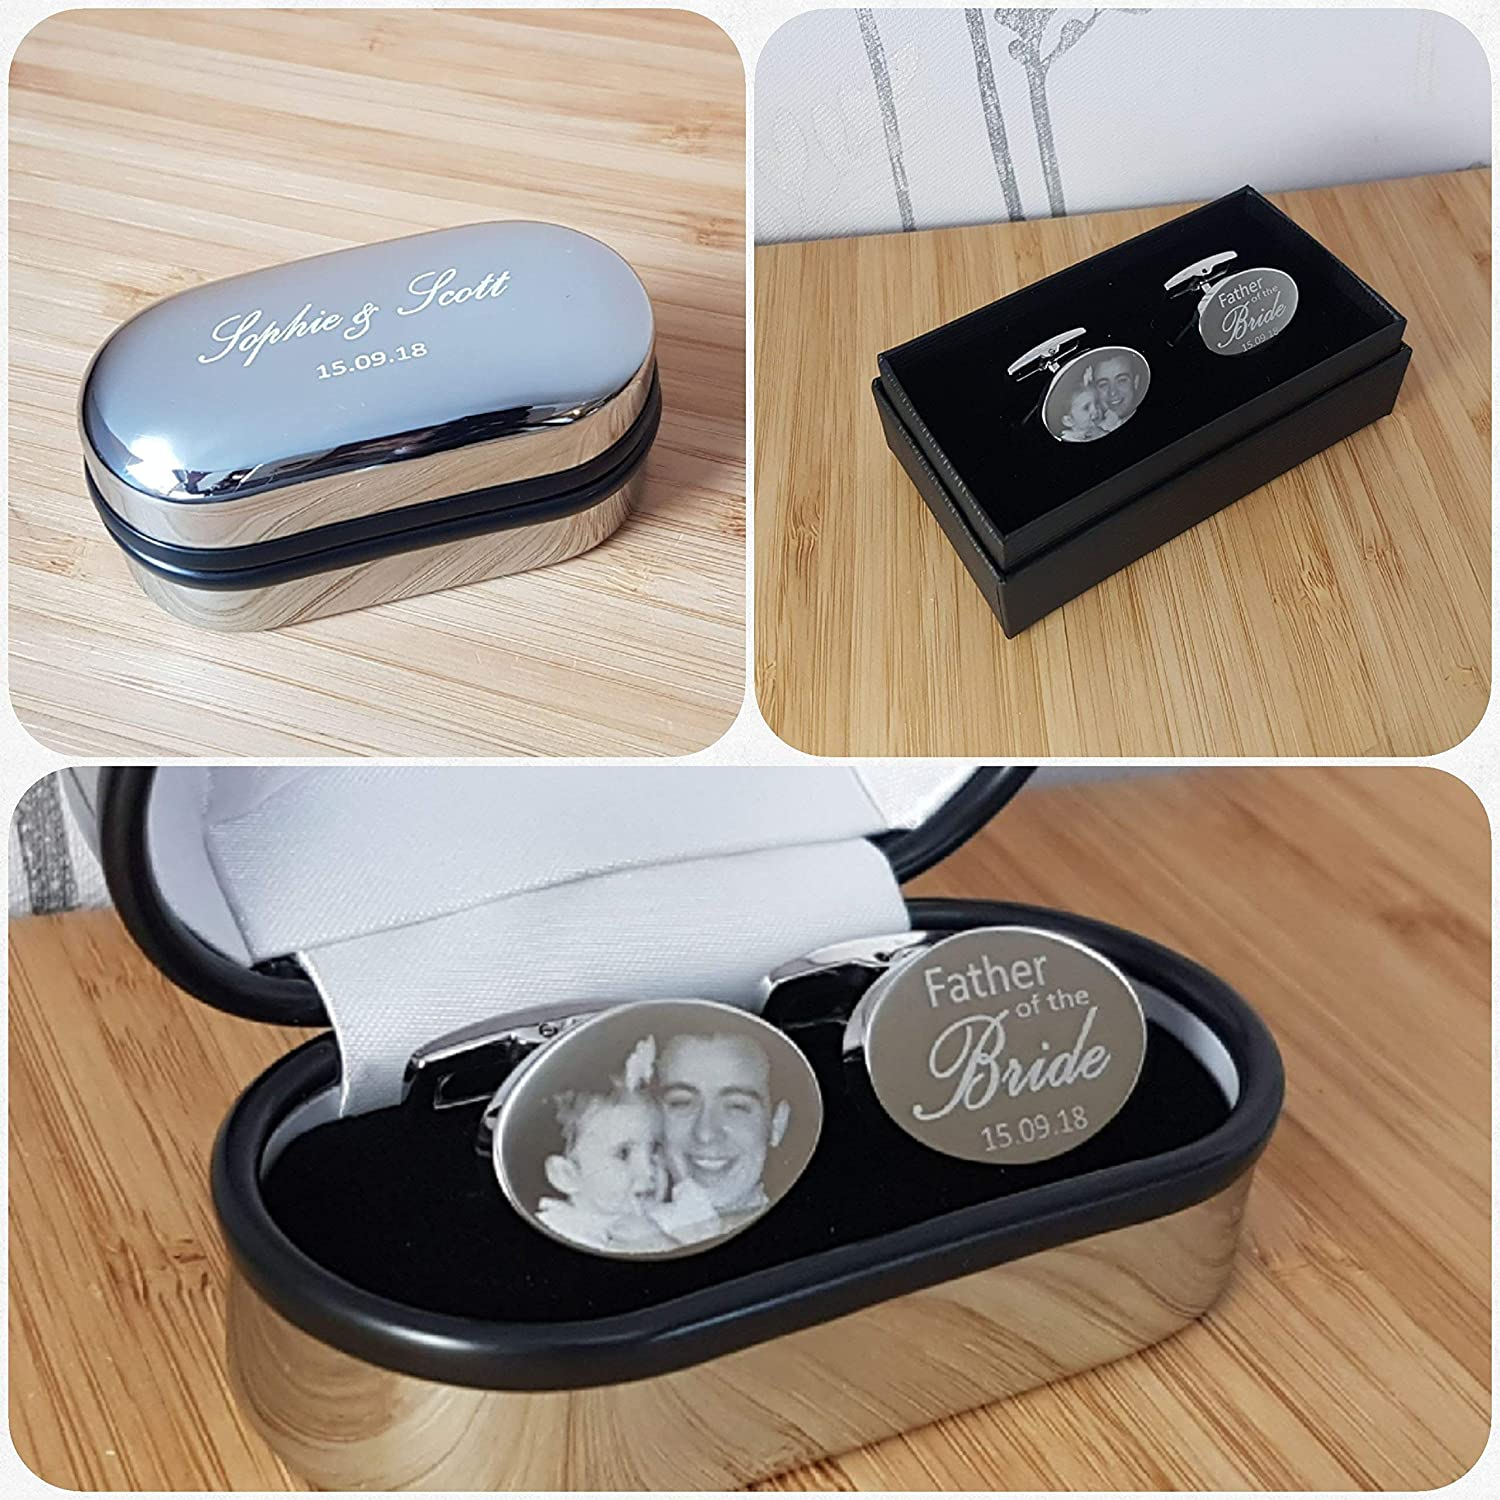 Hand and footprints and Text Engraved with Photos Wedding Favours Groom Gifts for Him Valentines Birthday Usher Father of the Bride Gifts Wedding Cufflinks Personalised